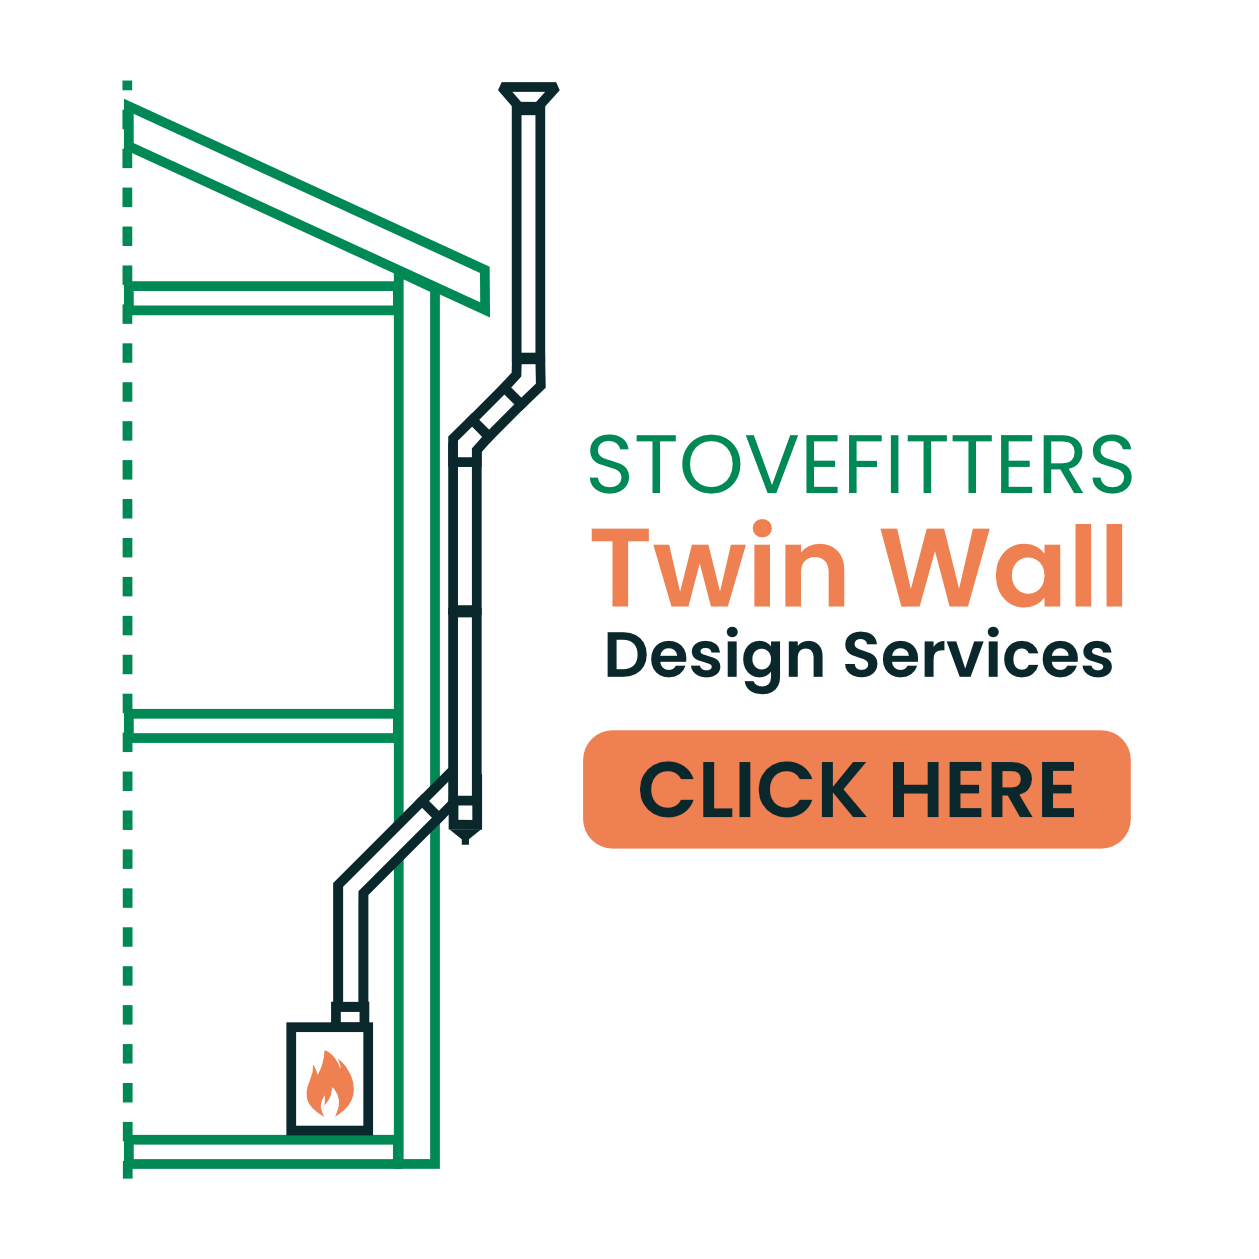 Stovefitter's Twin Wall Design Services